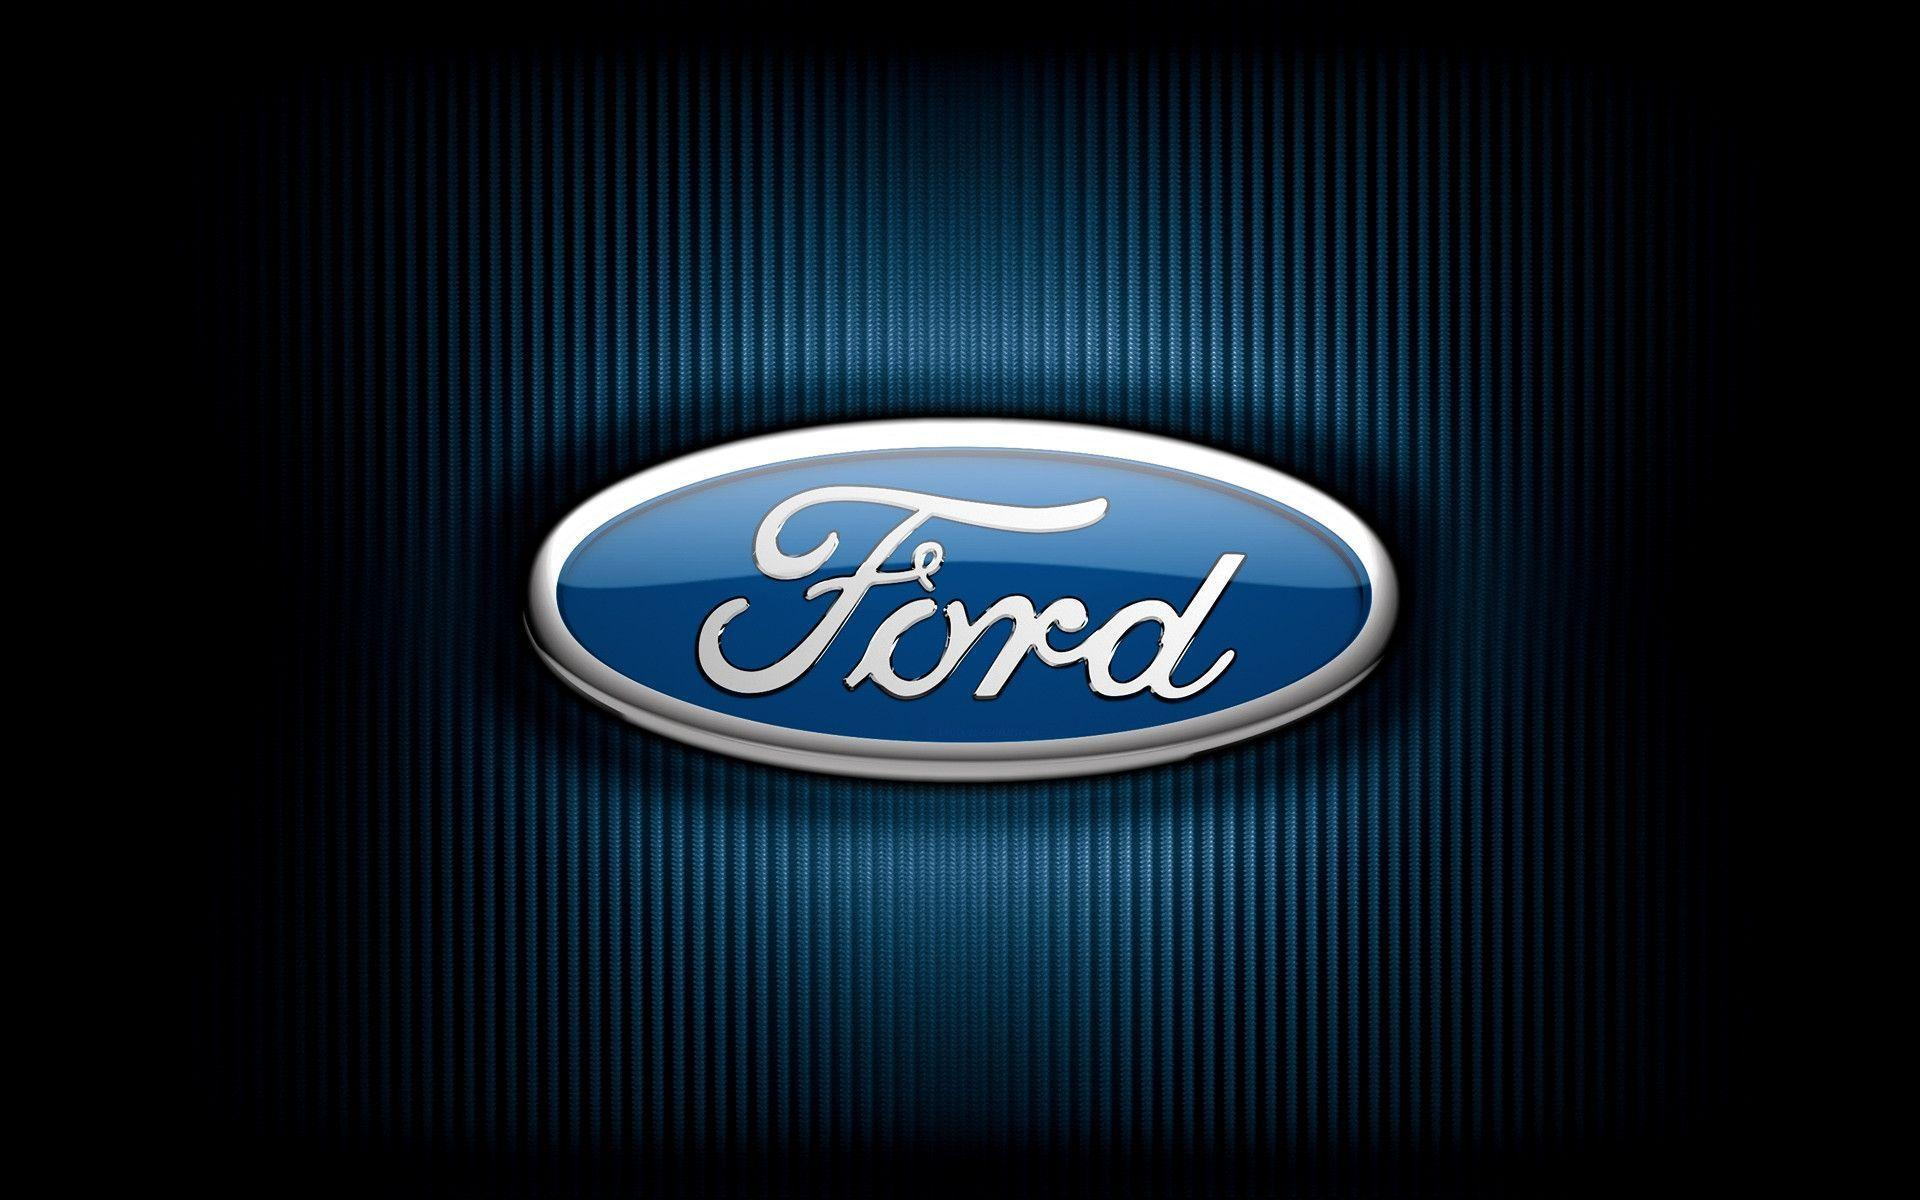 Ford Logo Wallpaper Iphone   Cars Wallpapers (1125) Ilikewalls.